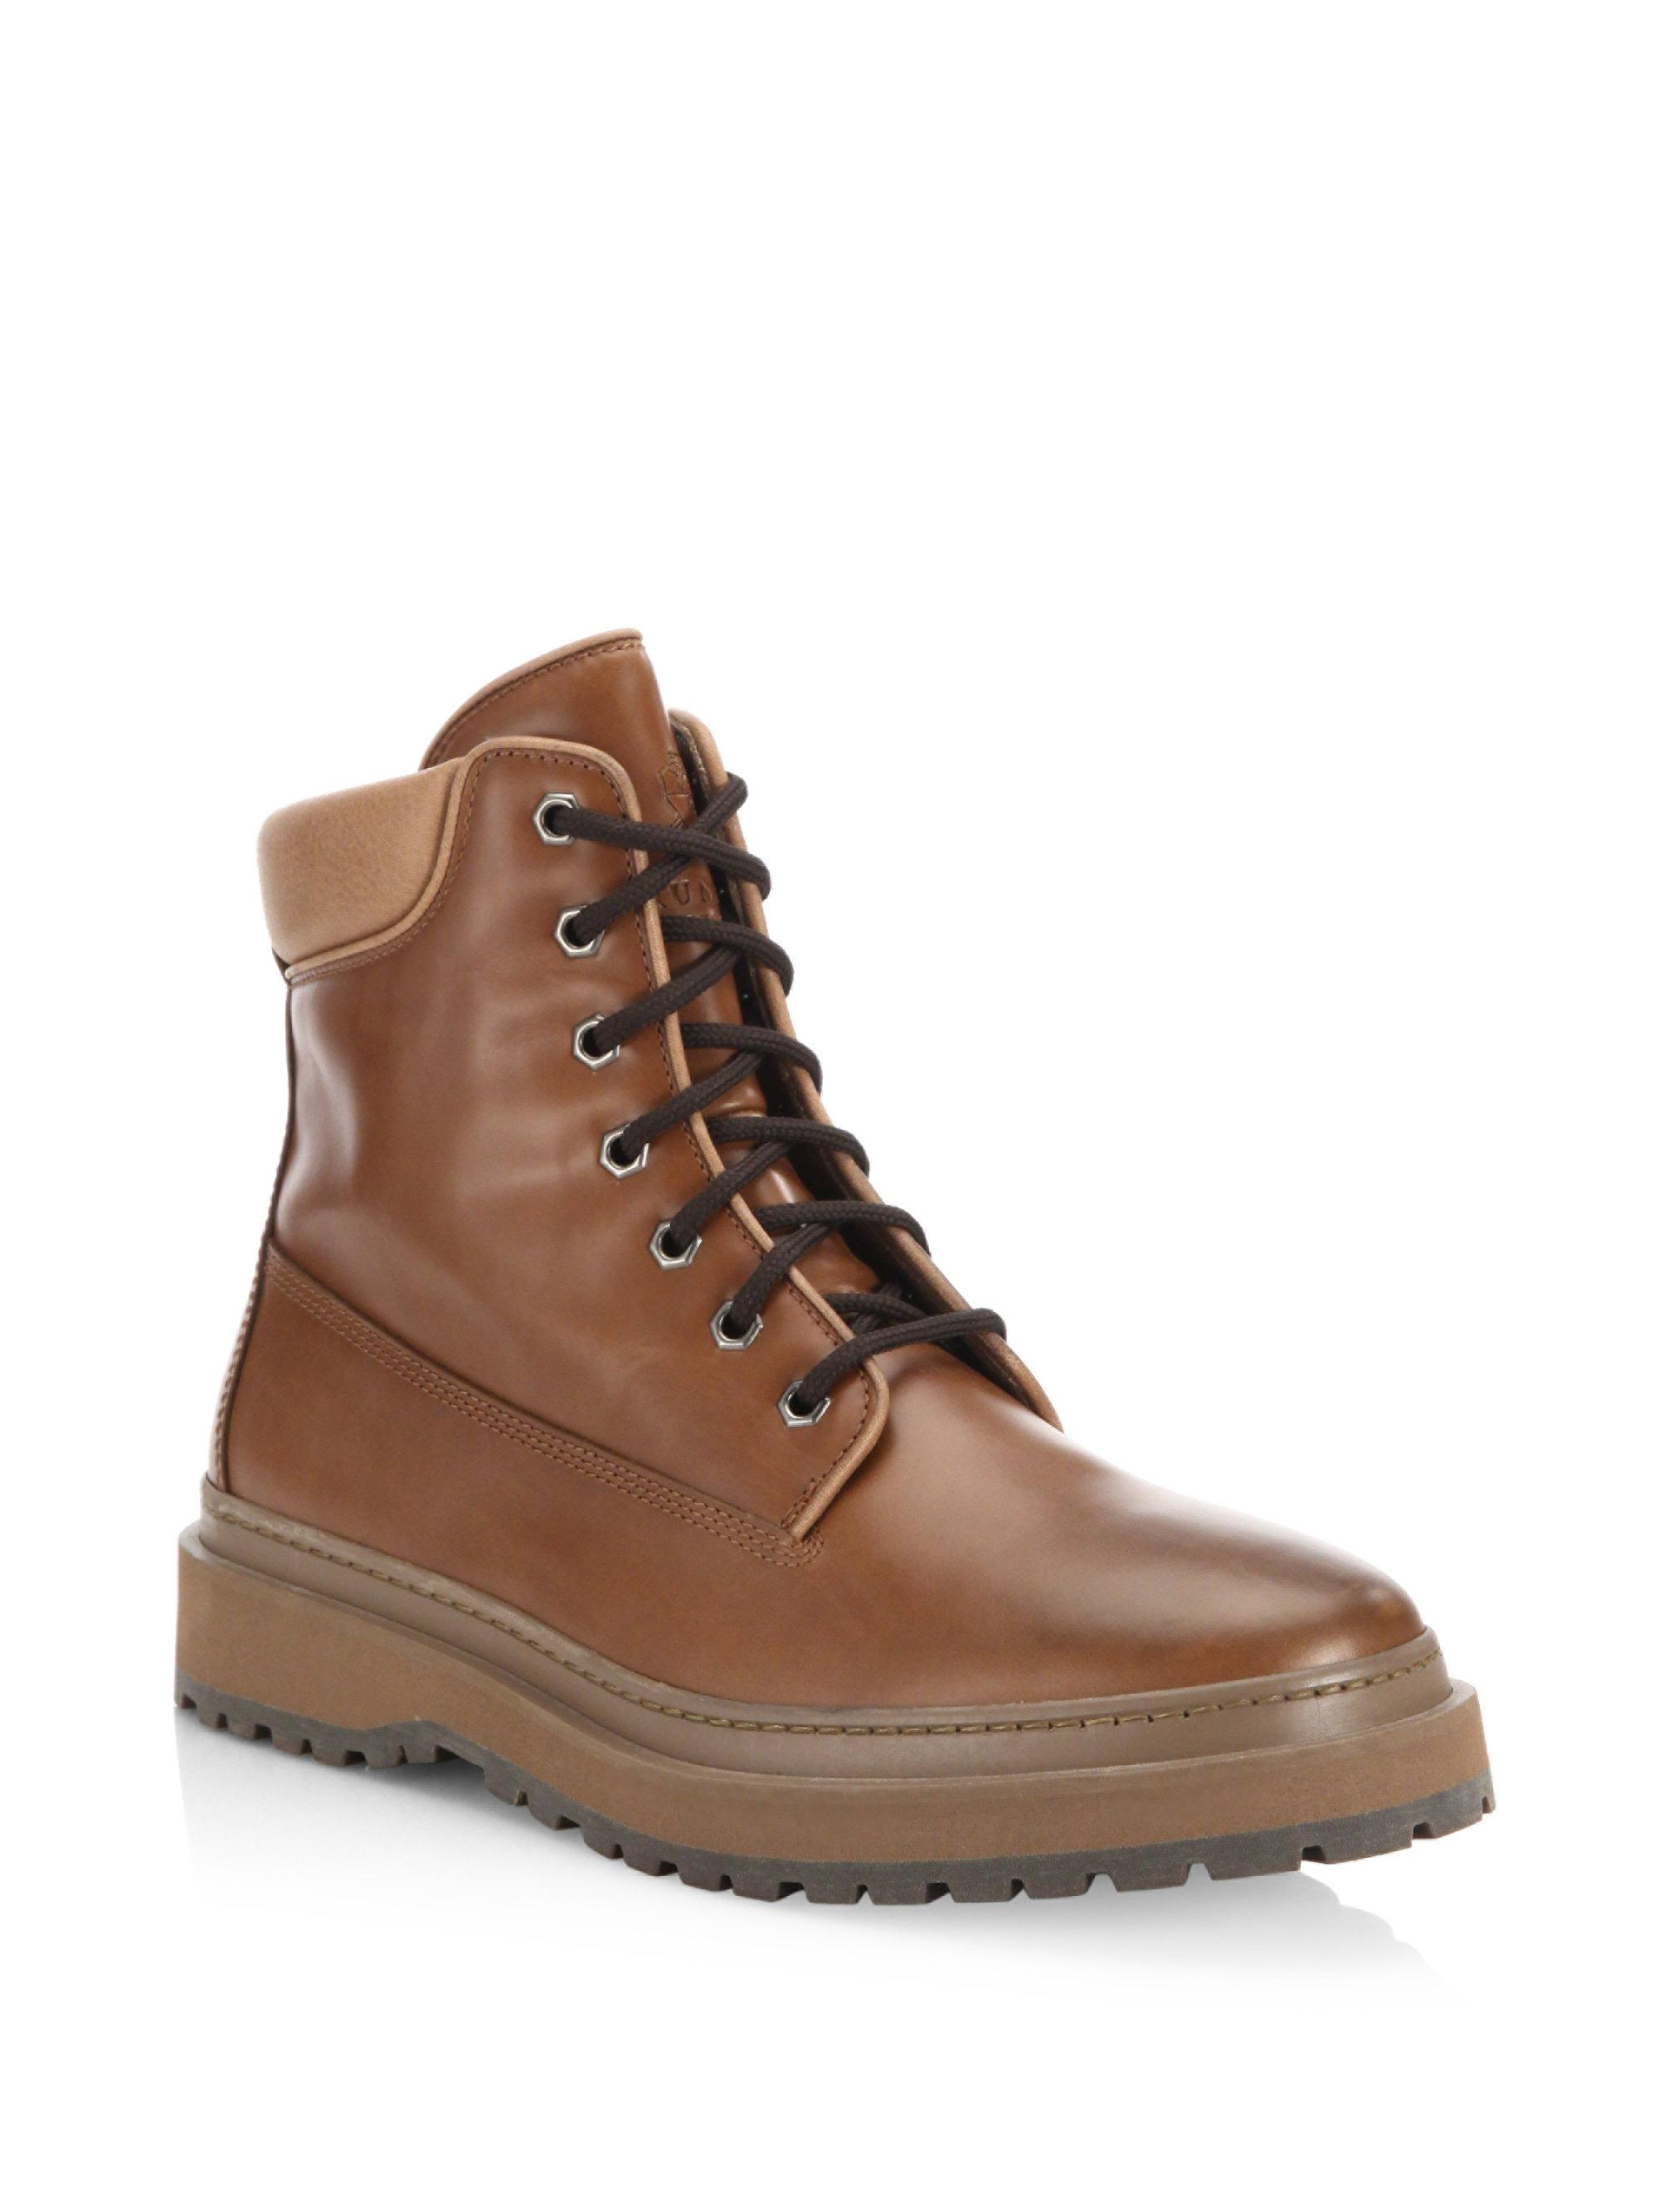 Brunello Cucinelli Mountain Lace-Up Leather Boots etePMR8Ru